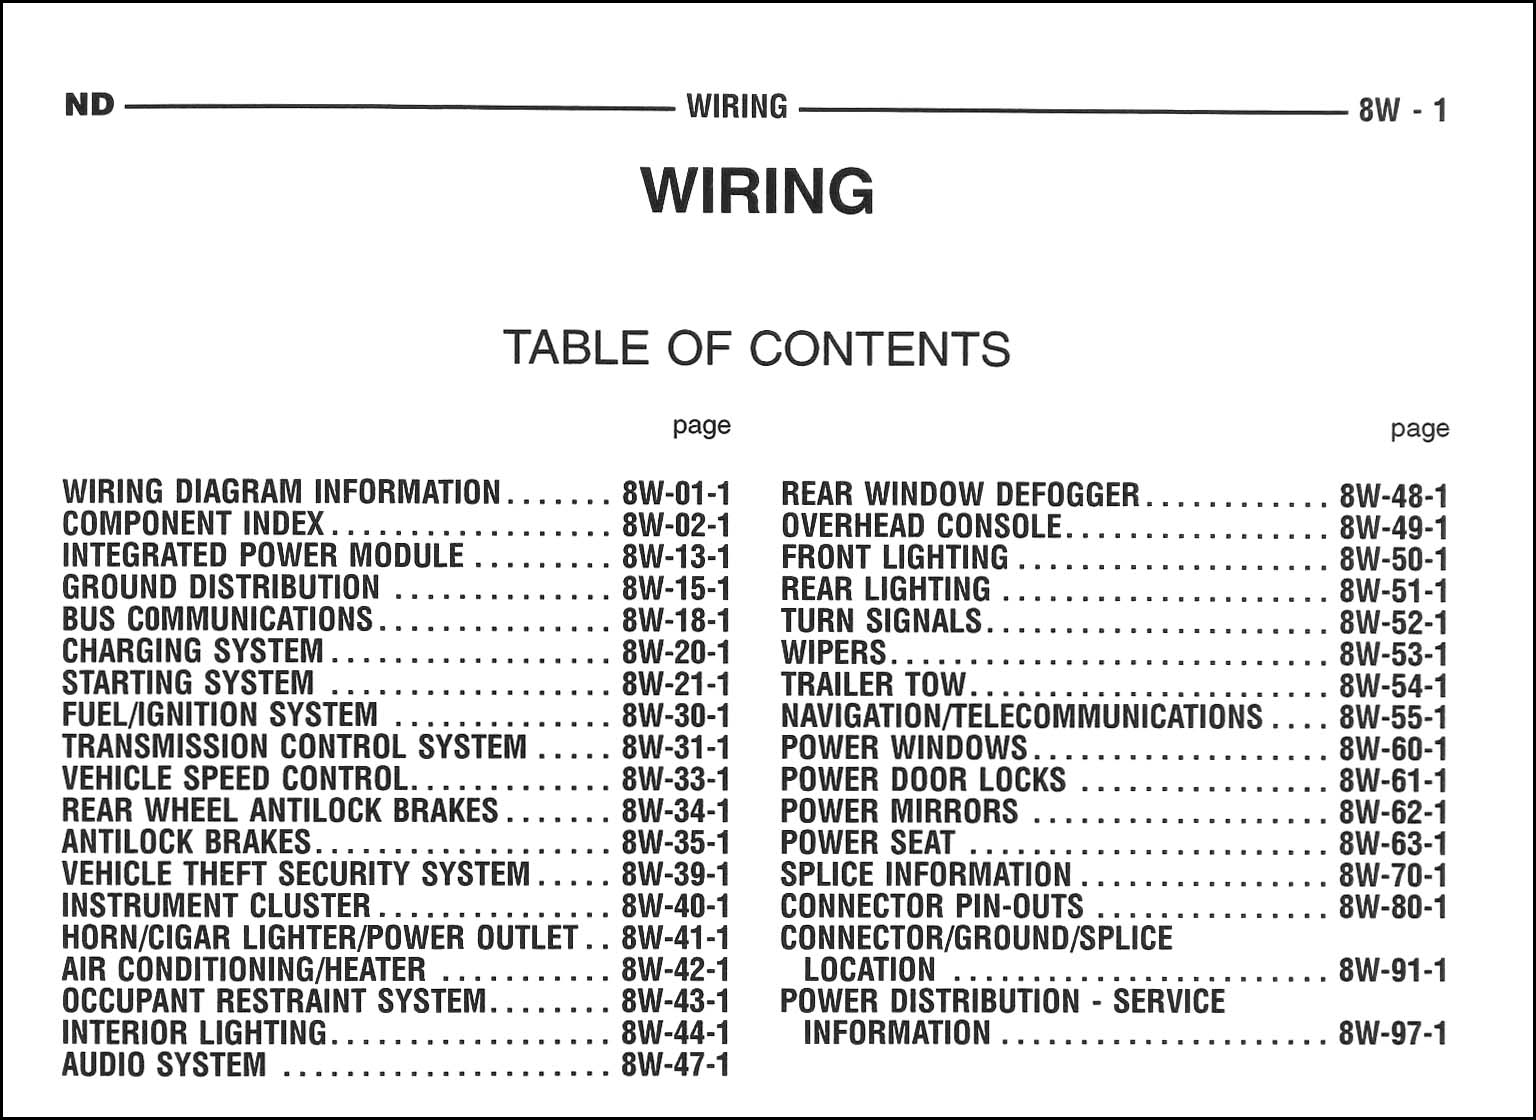 2005 Dodge Dakota Wiring Diagram Manual Original · Table of Contents Page